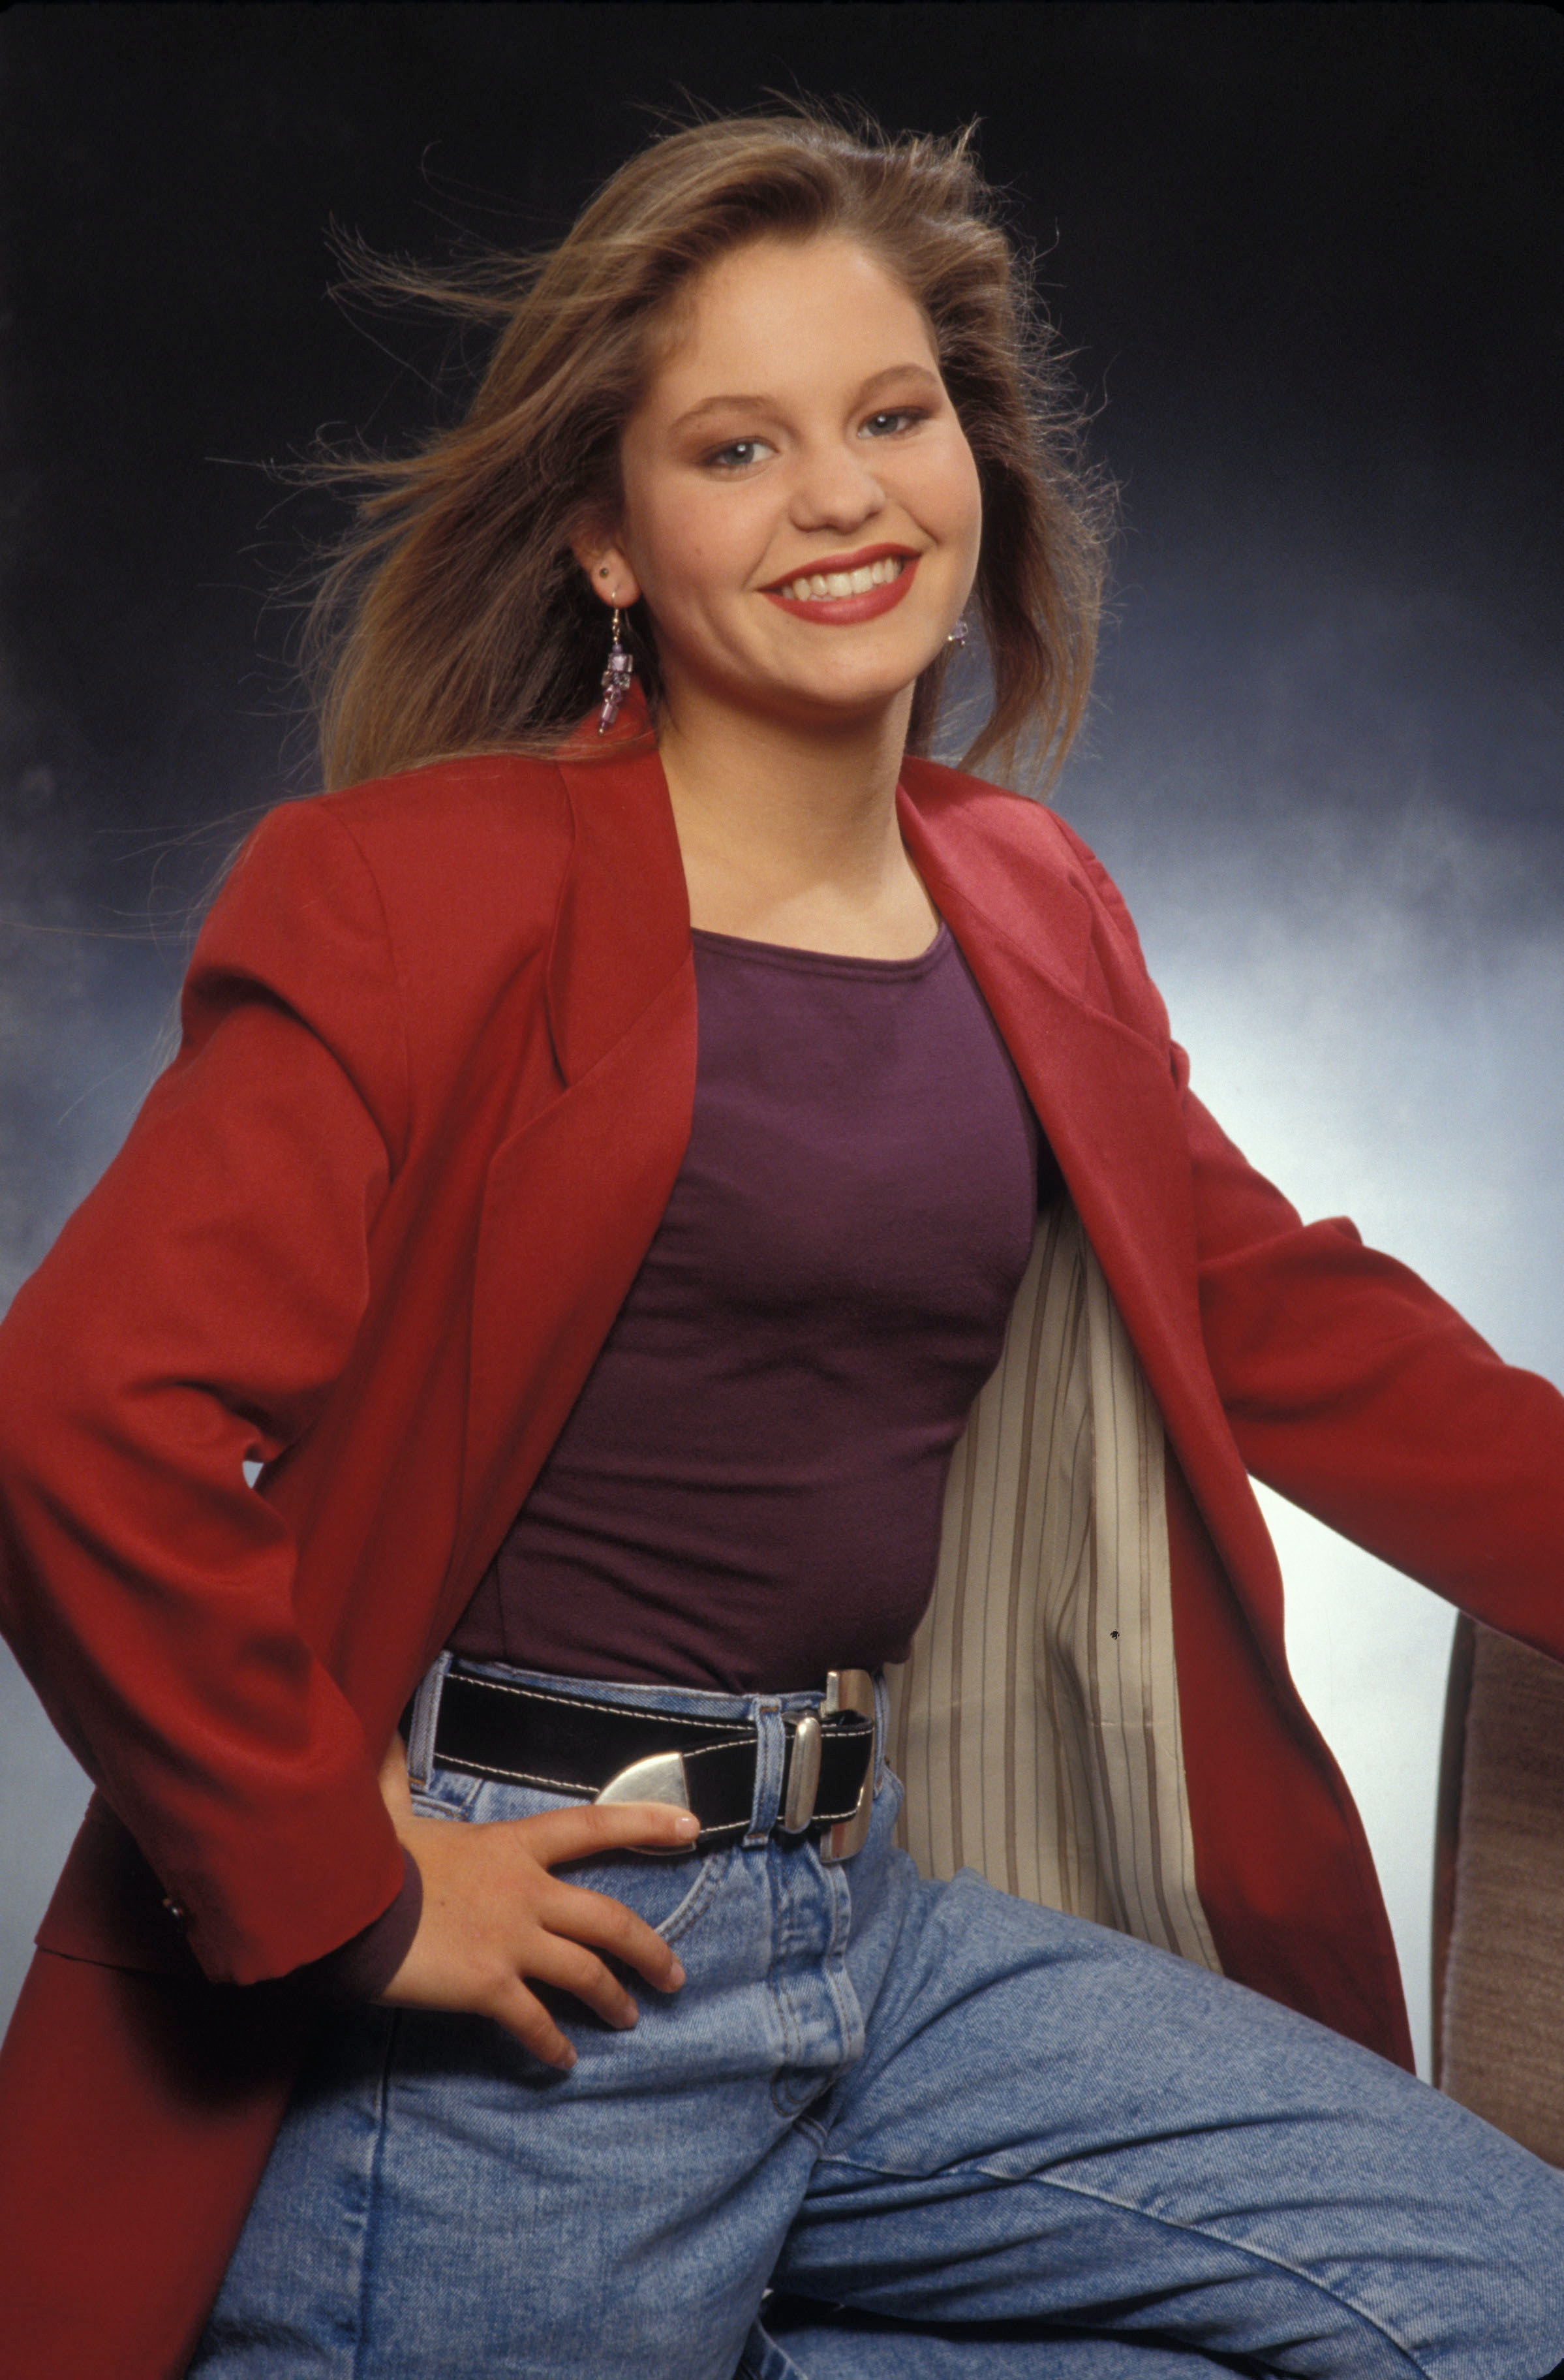 Style Tips You Should Steal From DJ Tanner Right Now PHOTOS